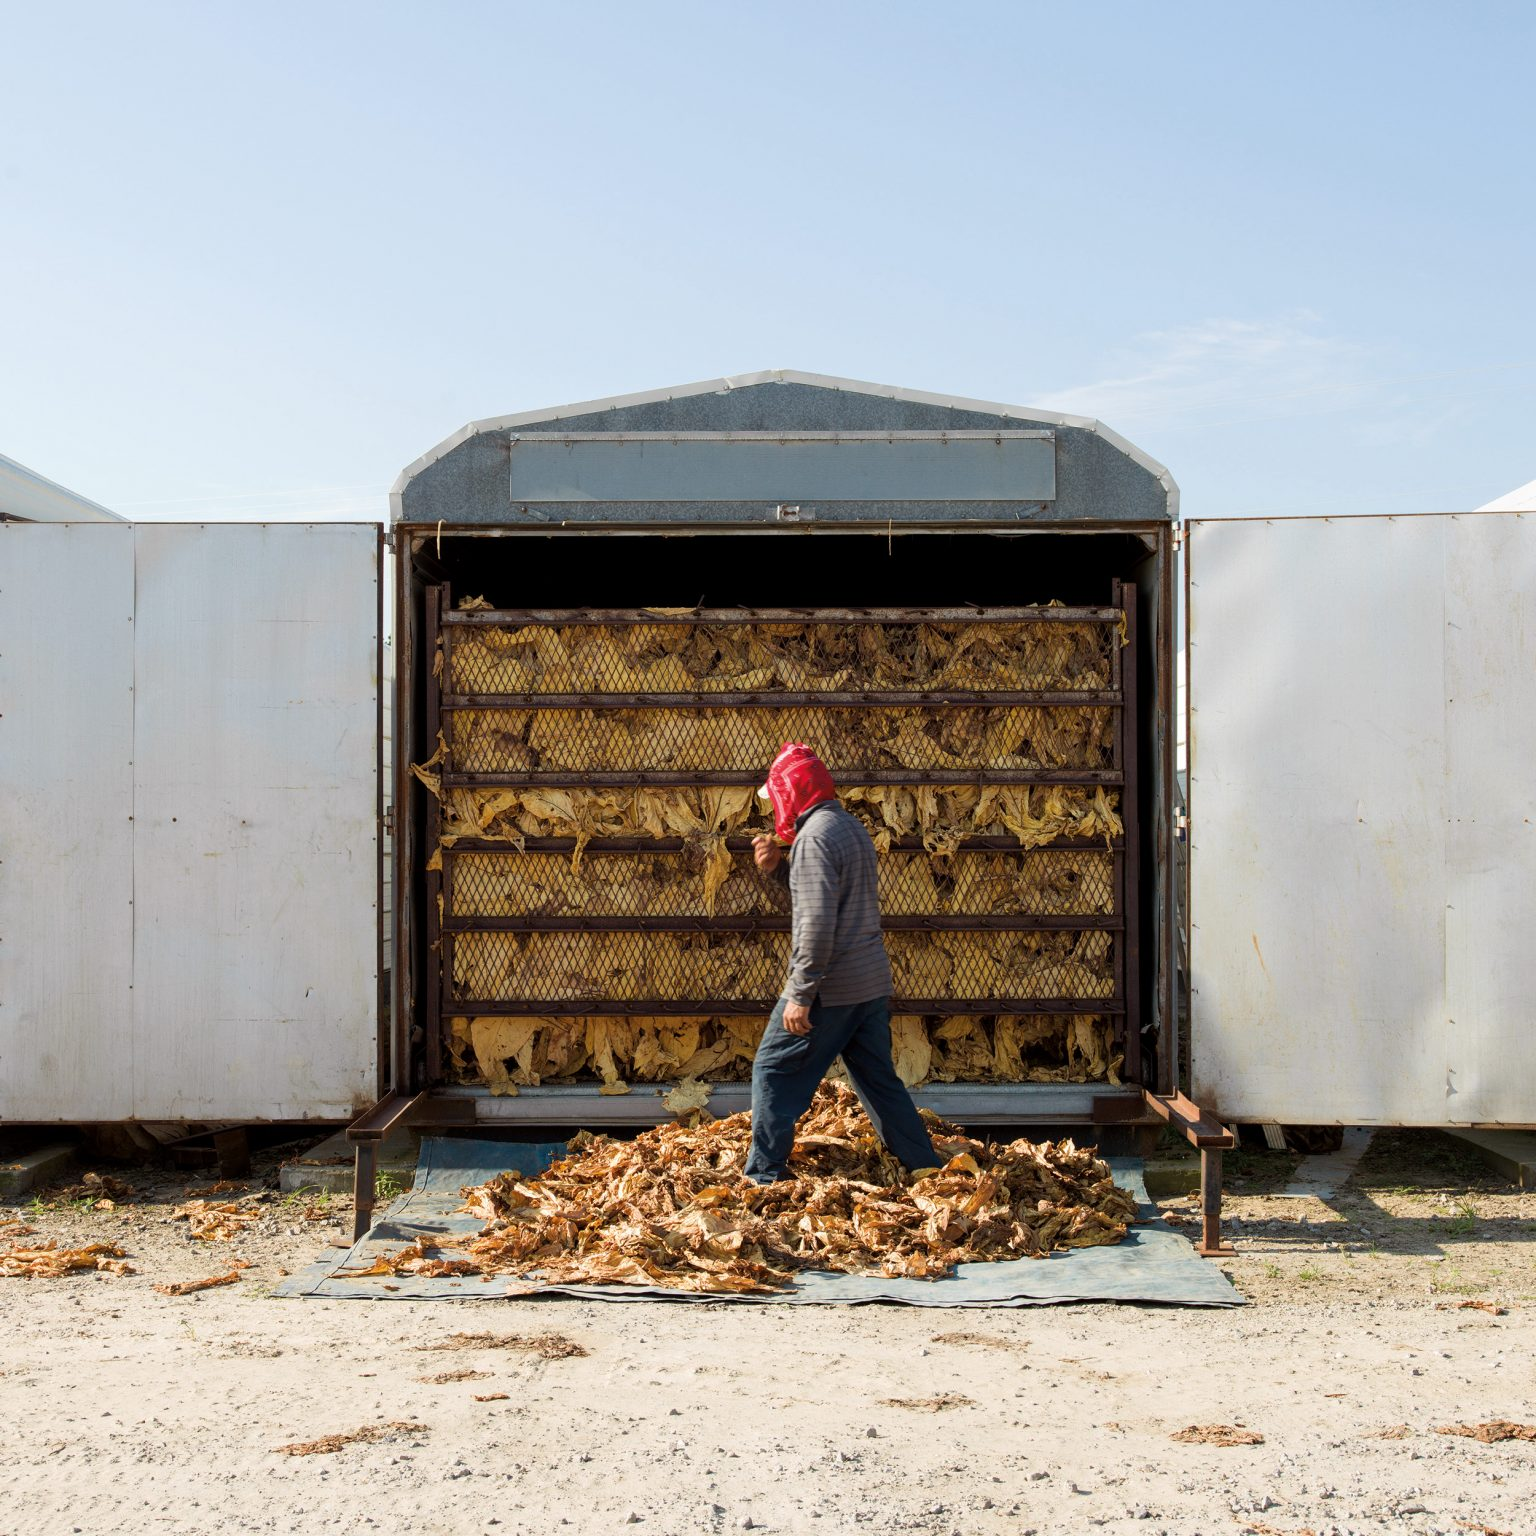 """Lucama, N.C., USA. Laborer in front of a curing barn at Sullivan Farms. Leaves will dry, getting ready to be sold. With 650 acres of tobacco and 40 seasonal laborers working in the farm, the Randy Edwards estate is investing in more fuel-efficient curing machines. However, buying and running barns is expensive. Farmers complain for the increasingly lower prices paid by companies for tobacco leaves. """"If a pack if cigarettes is 5 USD, farmers get about 5 cents"""", says Randy Edwards."""